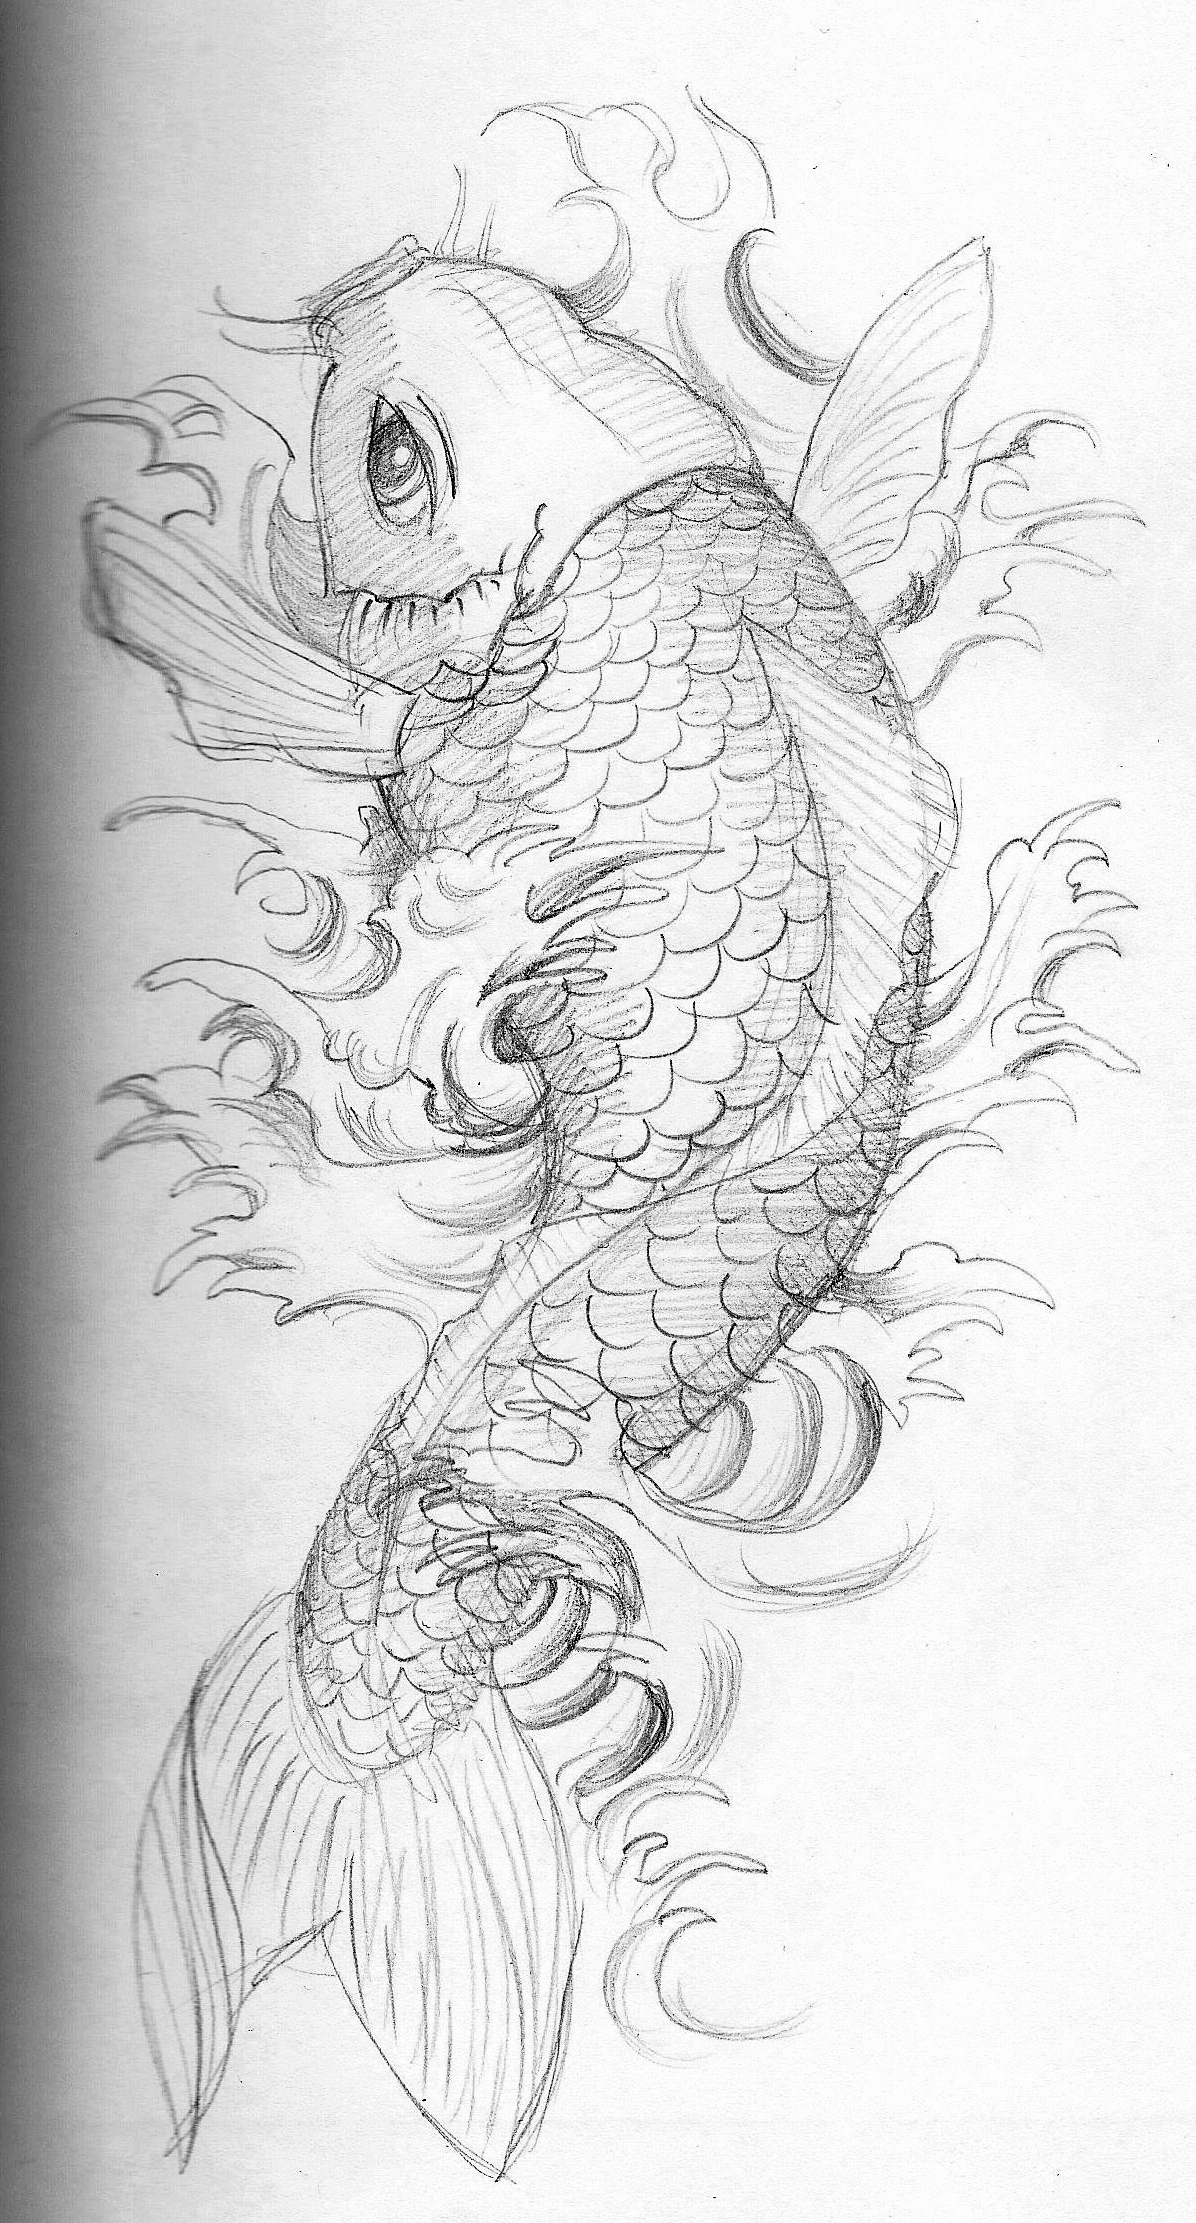 Free Octopus Koi Fish And Octopus Tattoo Design photo - 1